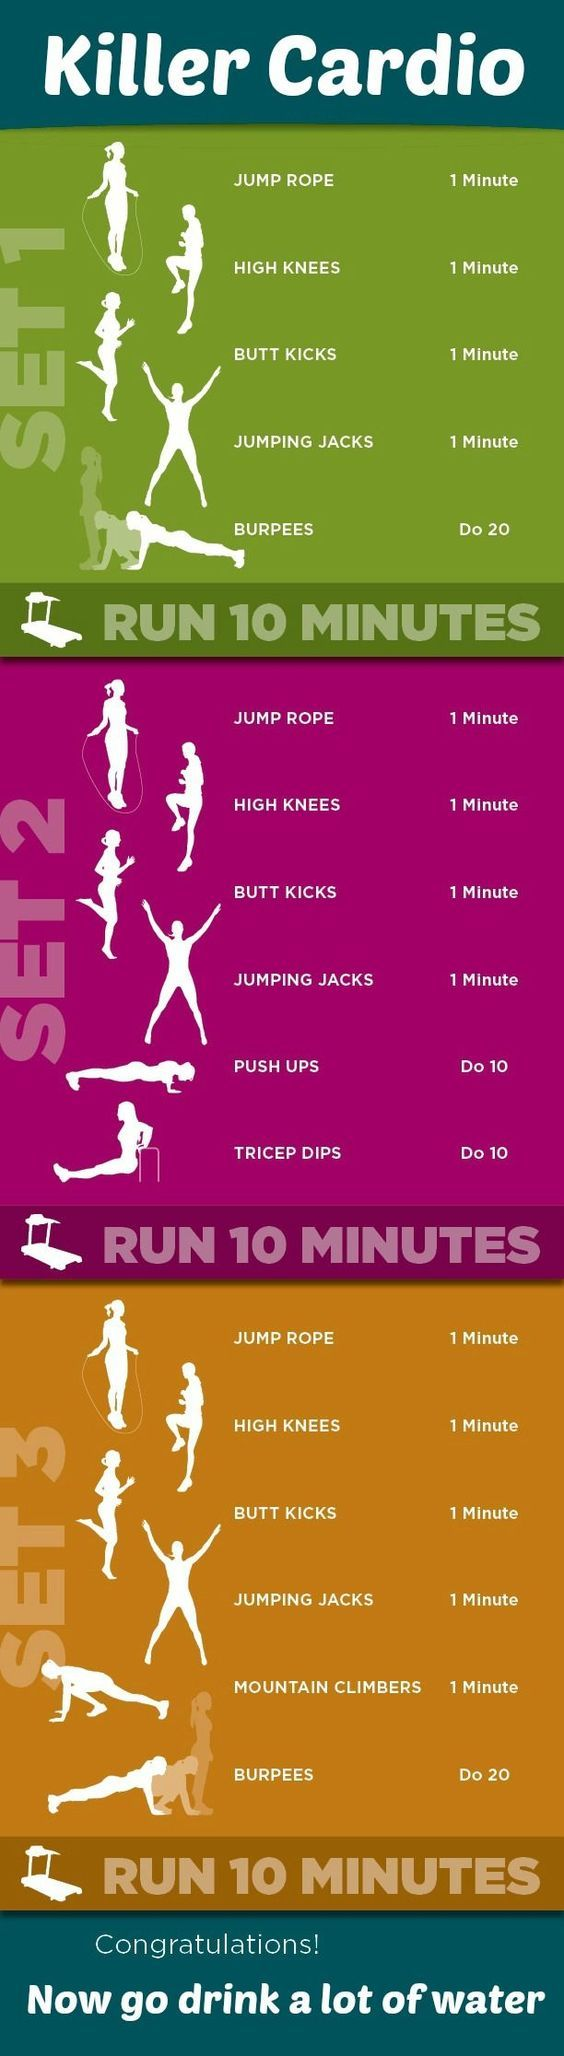 this is a tough cardio workout- do on the track, dips on the bleachers- bring water bottles: